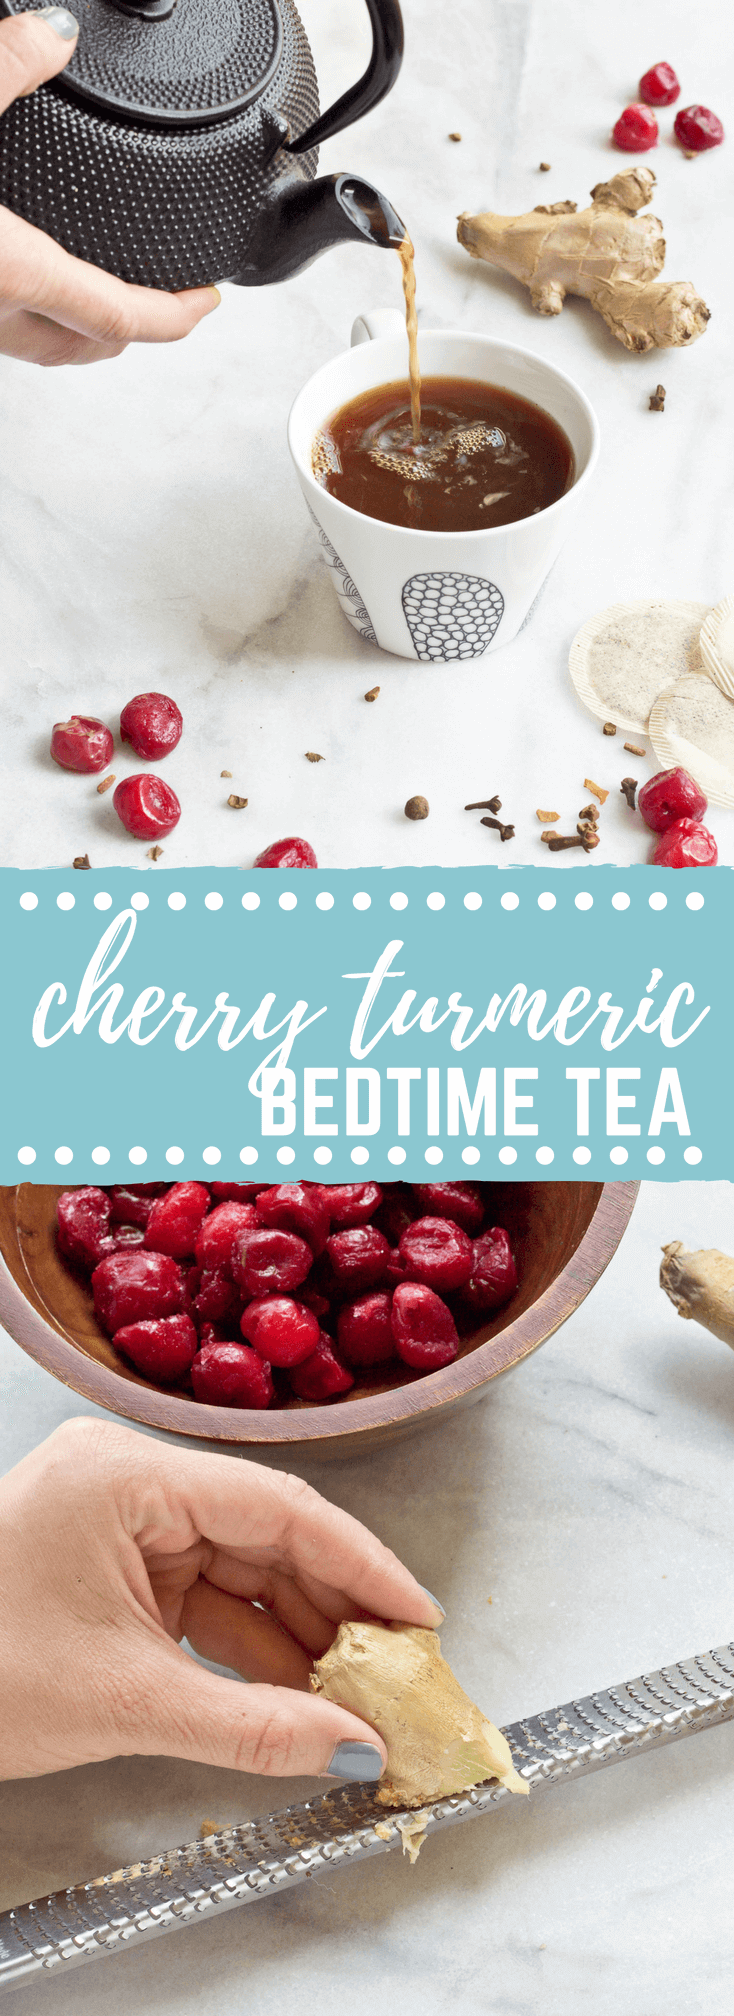 This Cherry Turmeric Bedtime Tea will undoubtedly change your tea life. Chamomile tea steeped in tart cherry juice, turmeric, ginger, and fresh tart cherries.